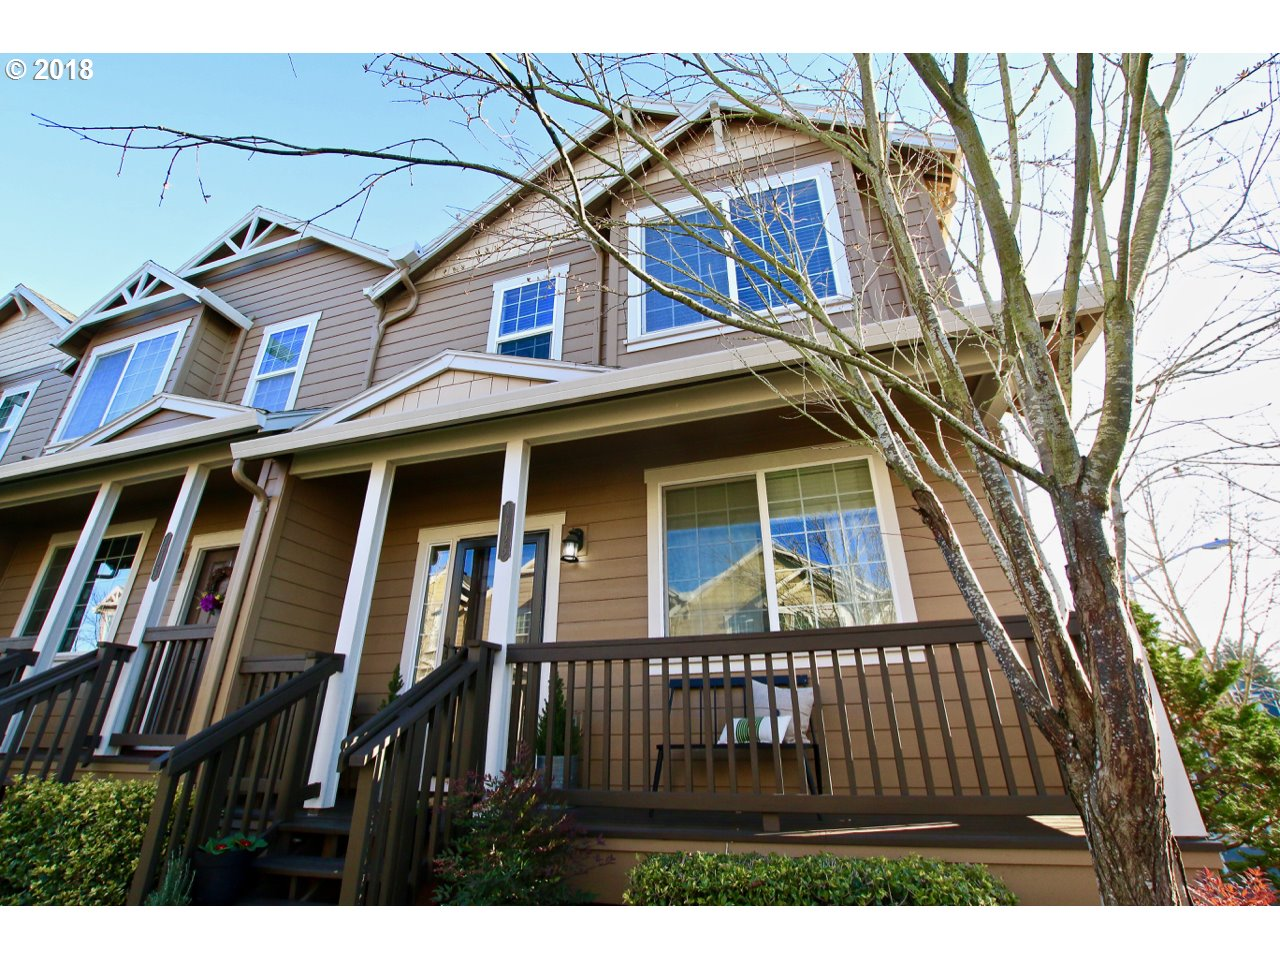 Photo for 16125 NW FESCUE CT, Portland, OR 97229 (MLS # 18666638)